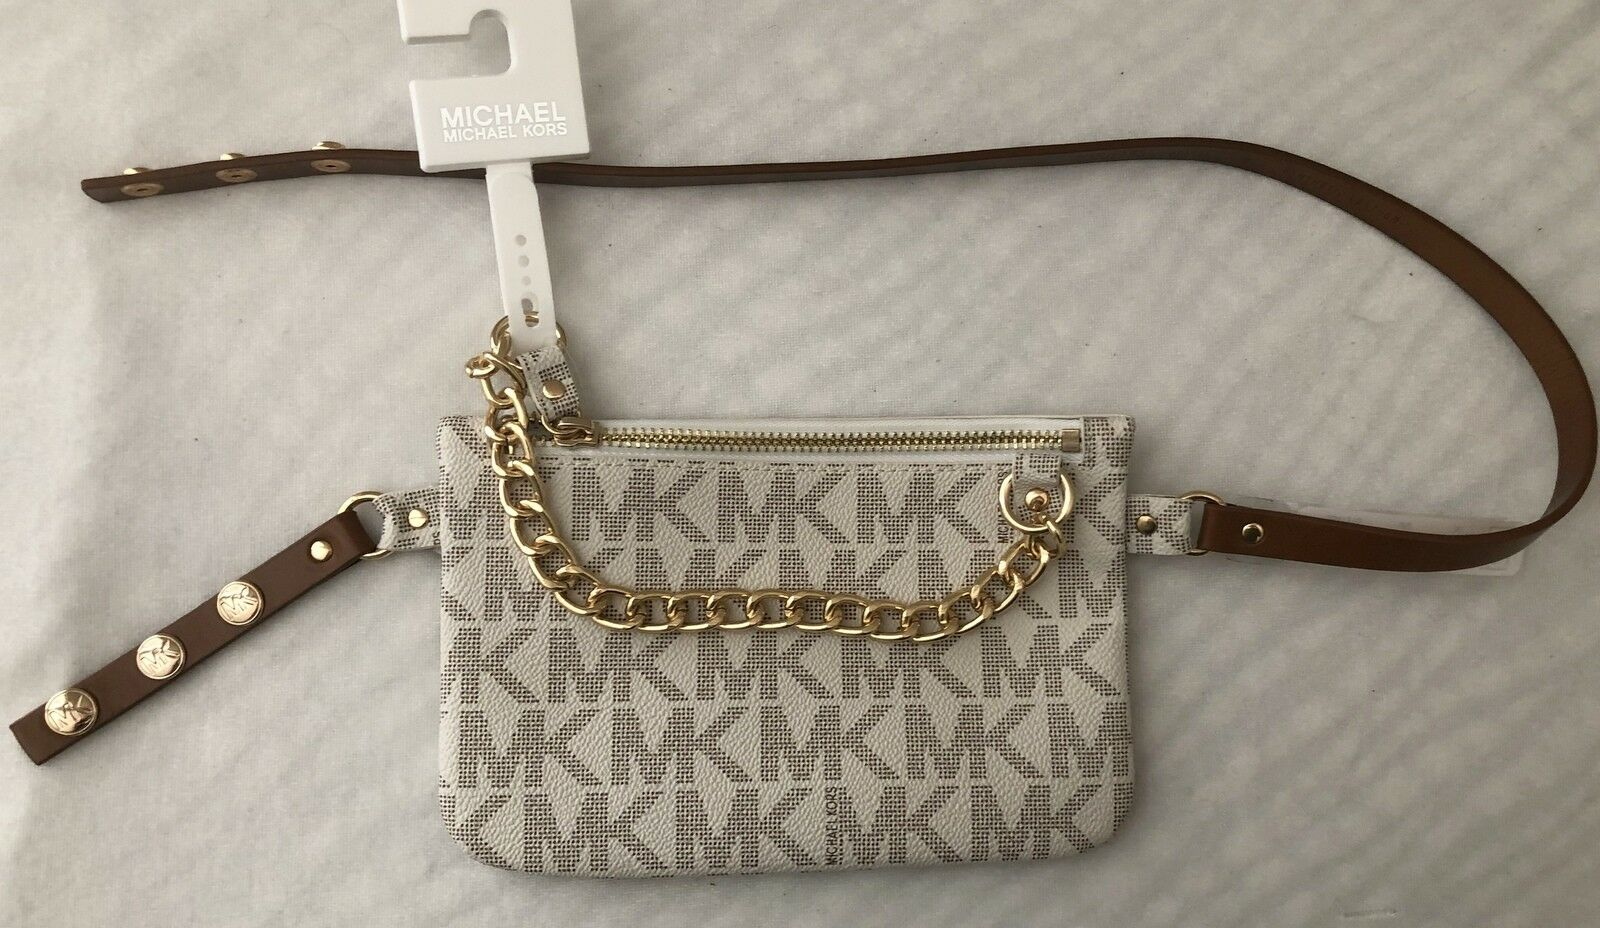 ee67dd58381b44 UPC 884585656452 product image for Michael Kors Pvc Mk Vanilla Fanny Pack  With Gold Chain, ...